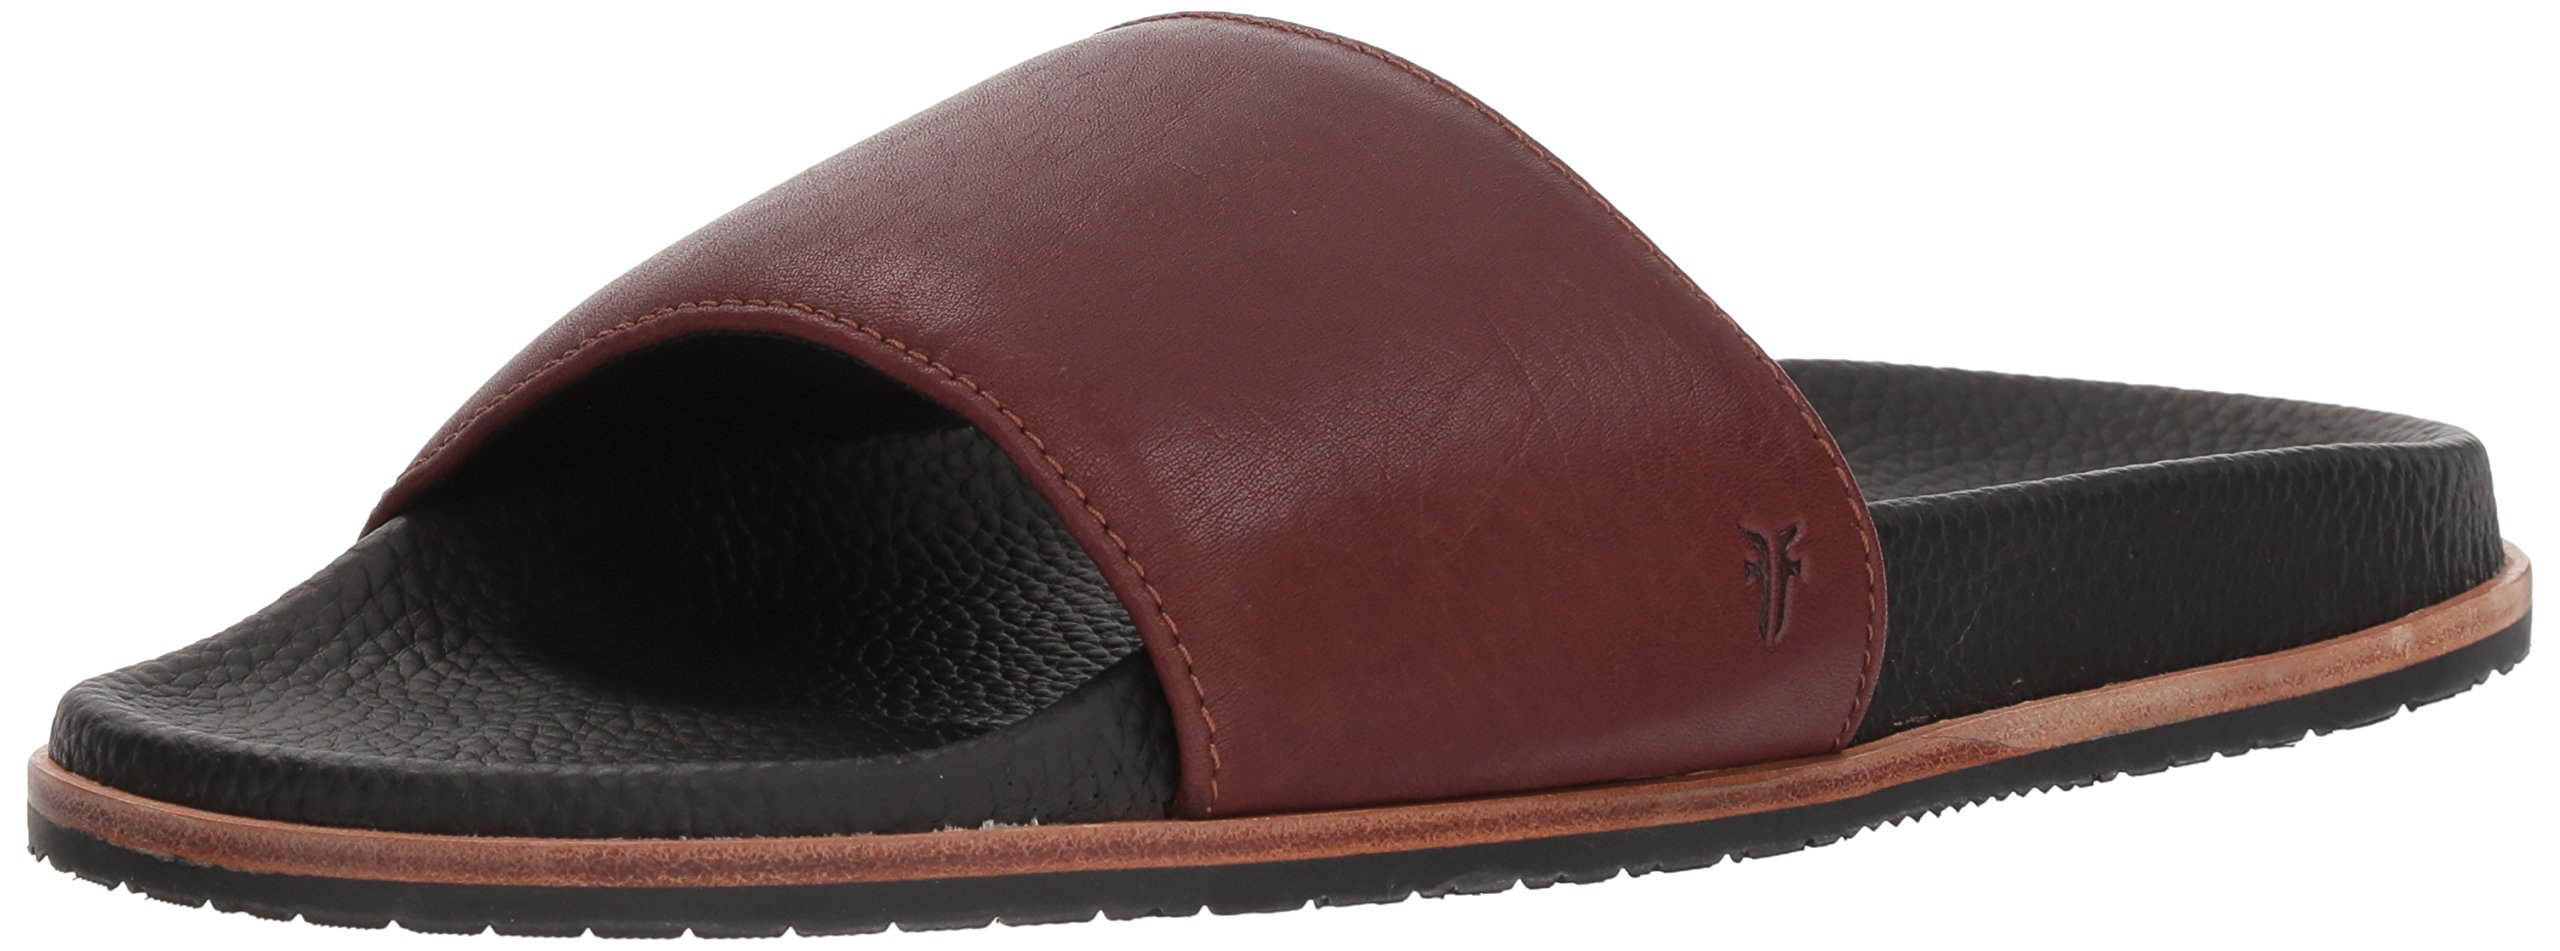 FRYE Men's Emerson Slide Sandal, Brown 12 Medium US by FRYE (Image #1)